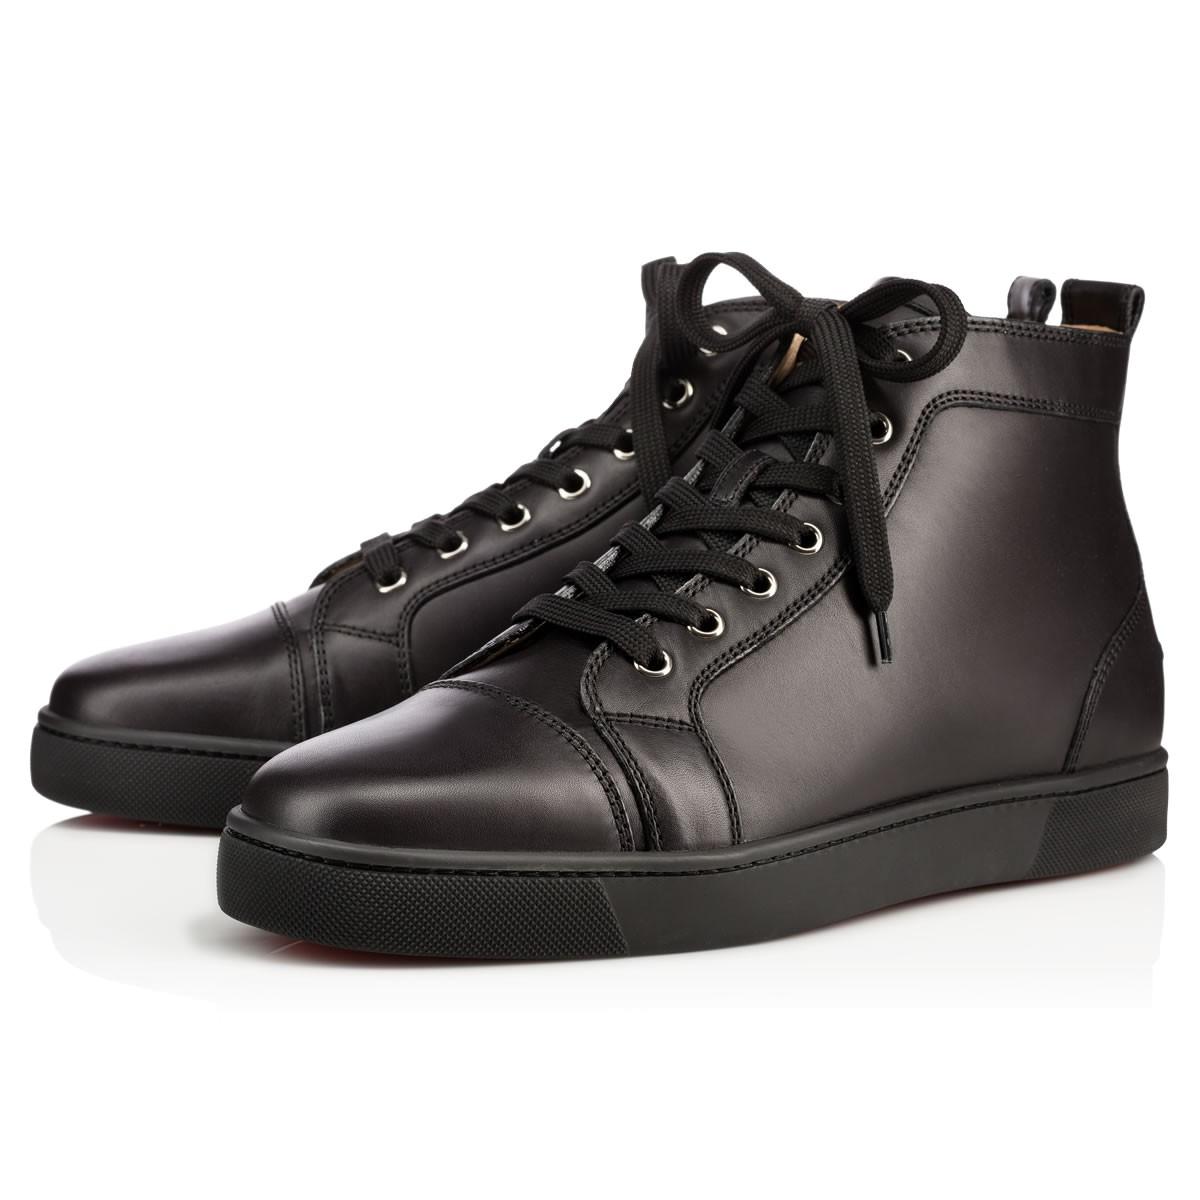 1b94a05b9a3d LOUIS CALF Black Calfskin - Men Shoes - Christian Louboutin